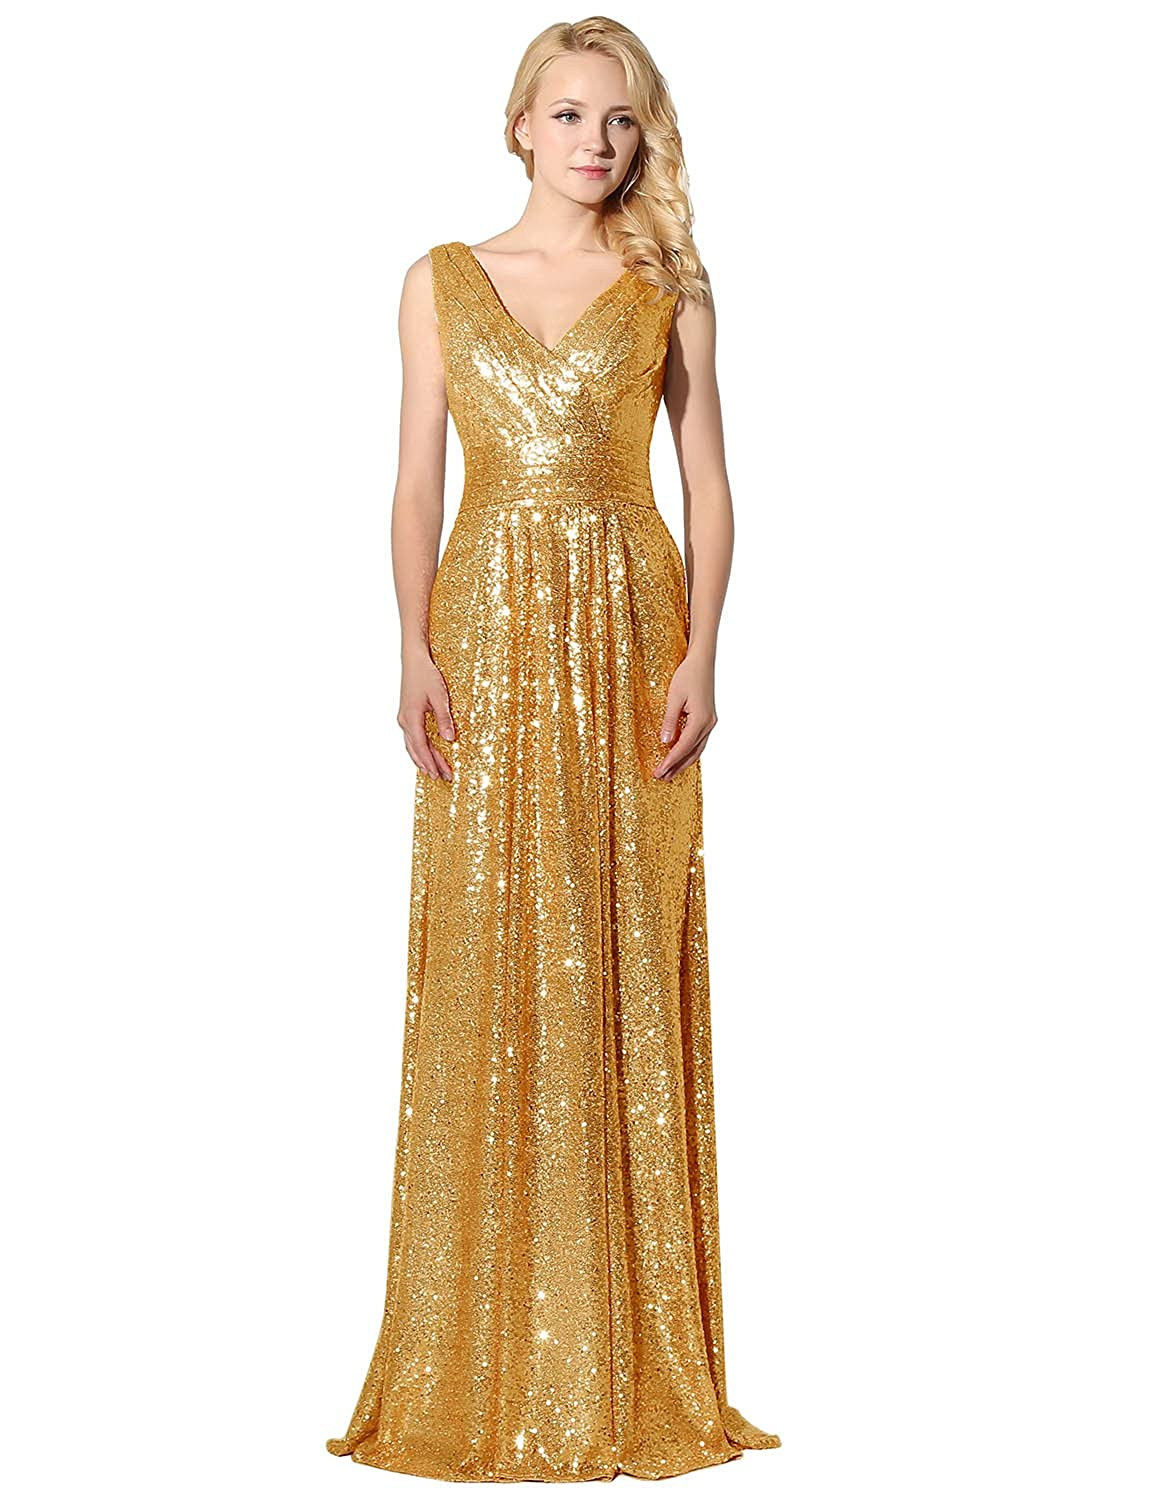 Clearbridal Women's Sequines Rose Gold Prom Evening Dress Formal Long Maxi Ball Gown Bridesmaid Dress, Gold, UK 14